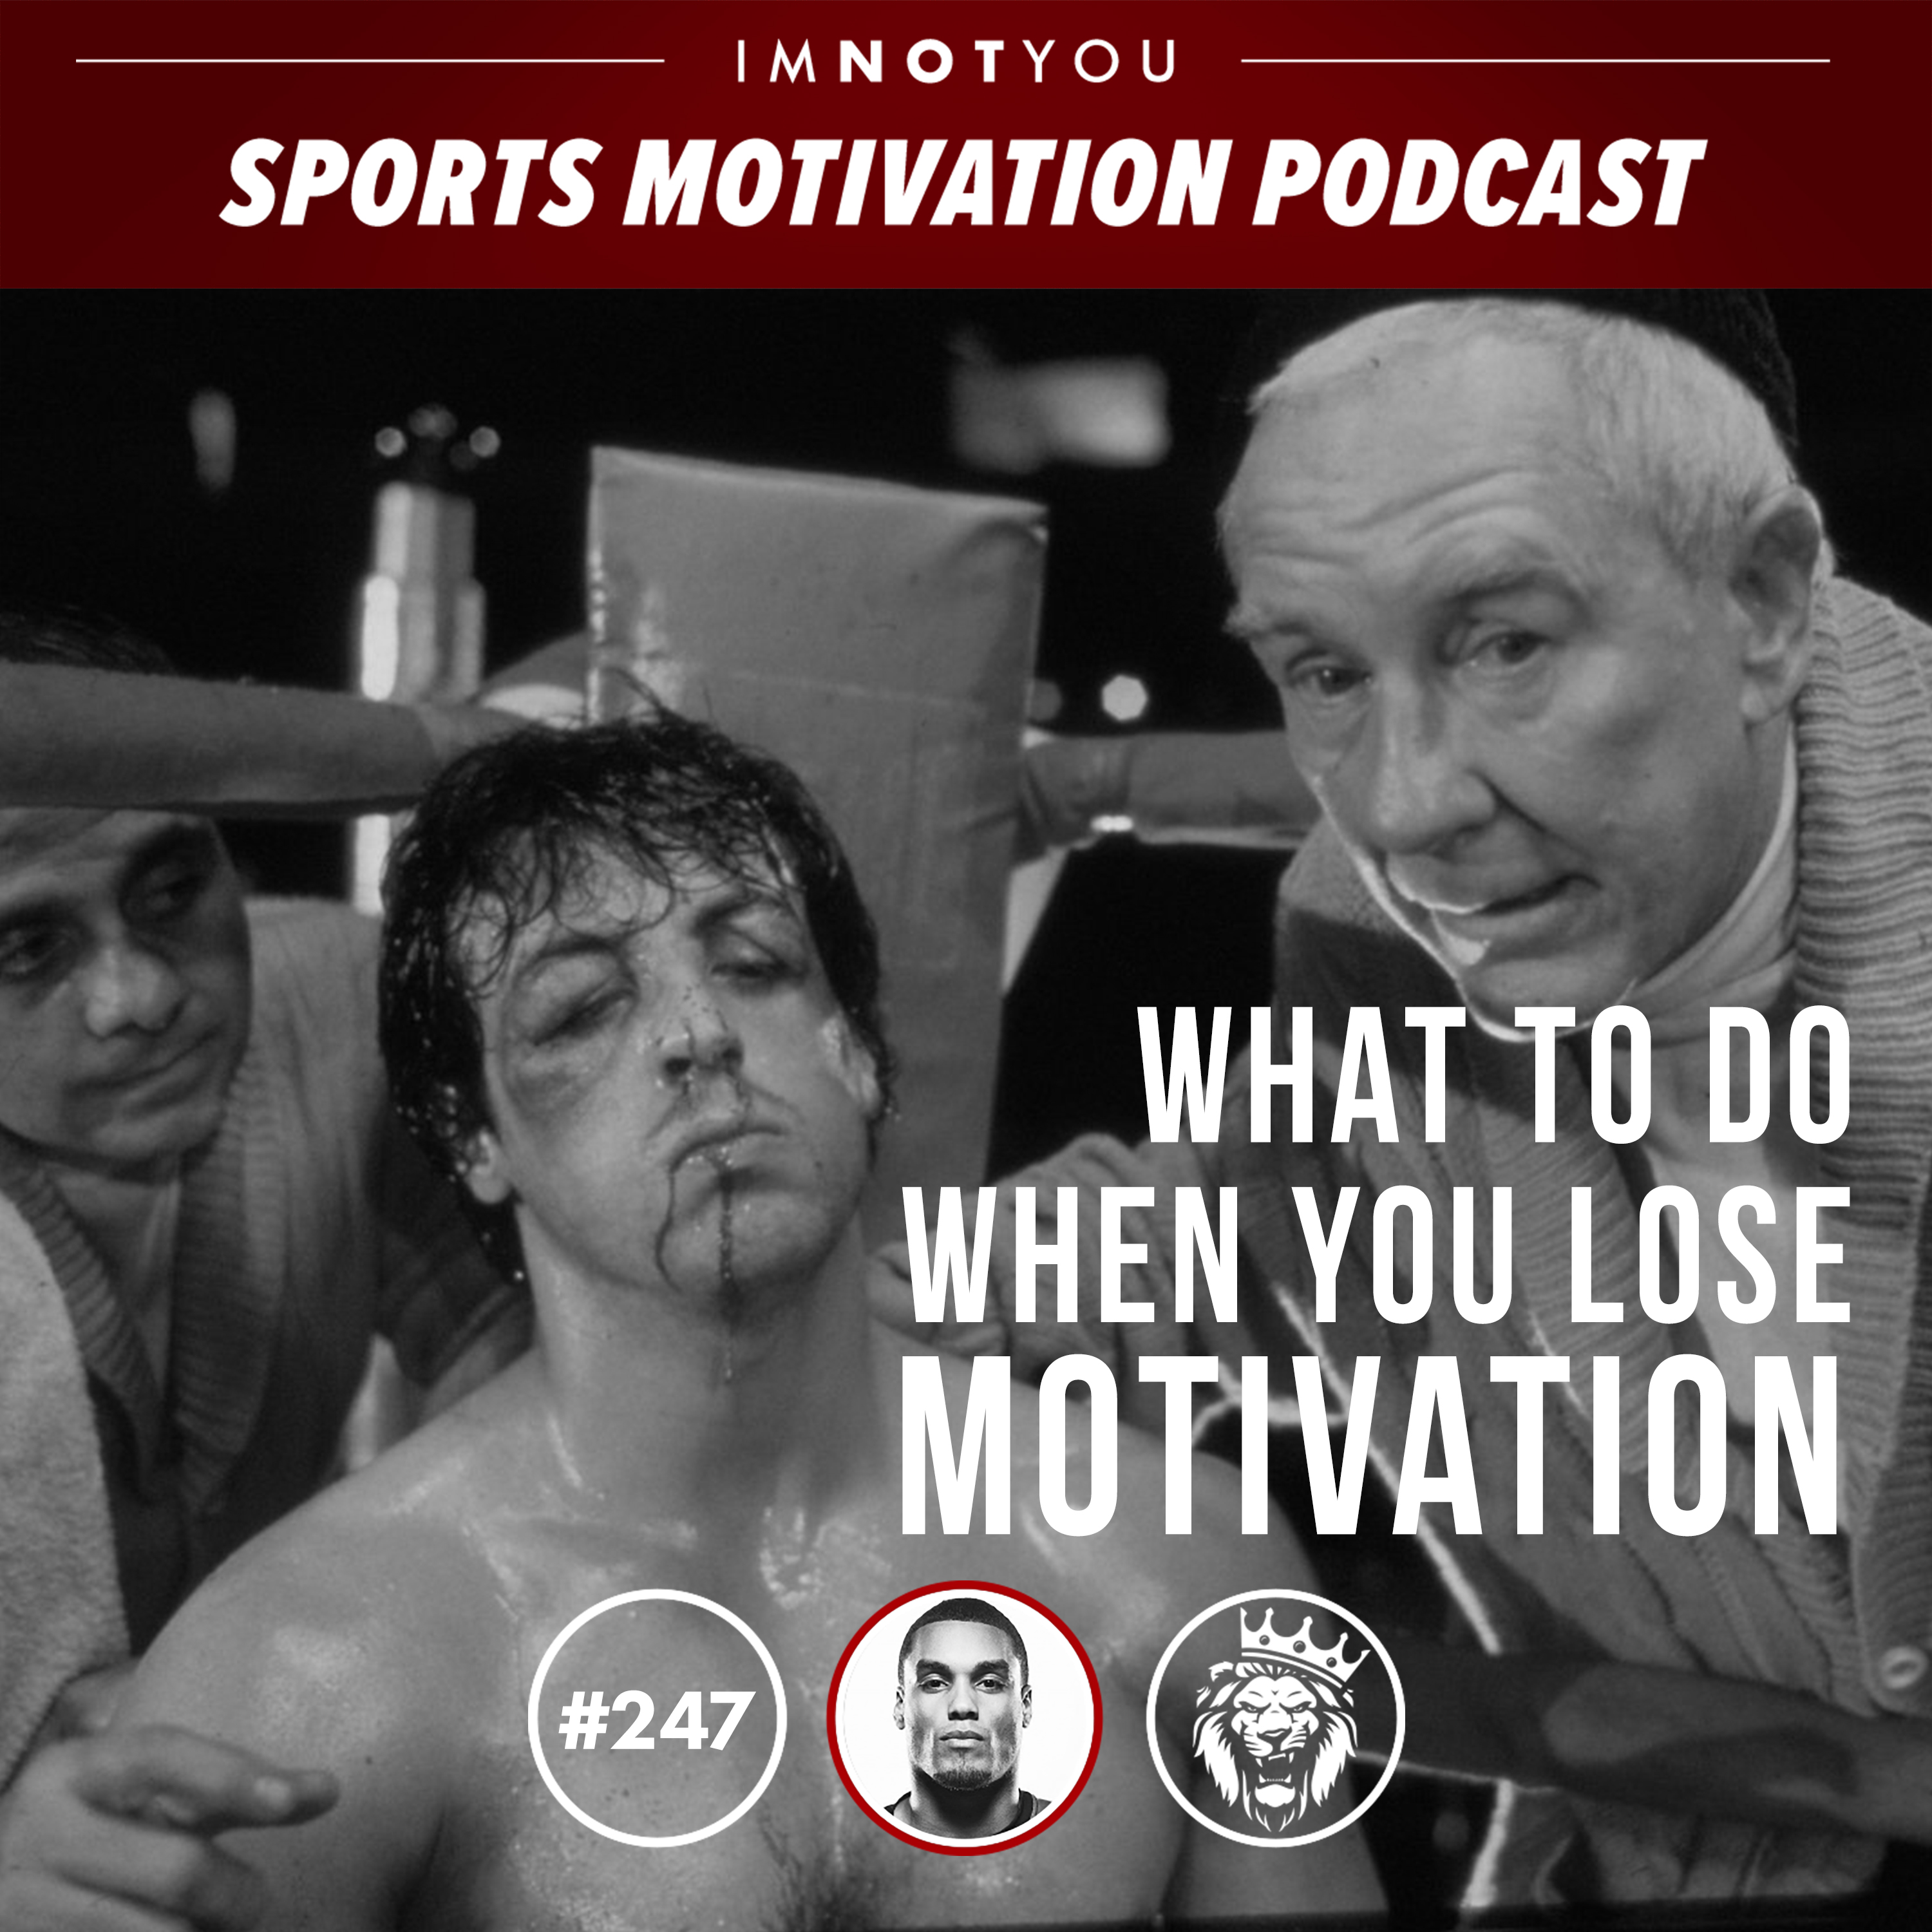 247: What to do when you lose motivation